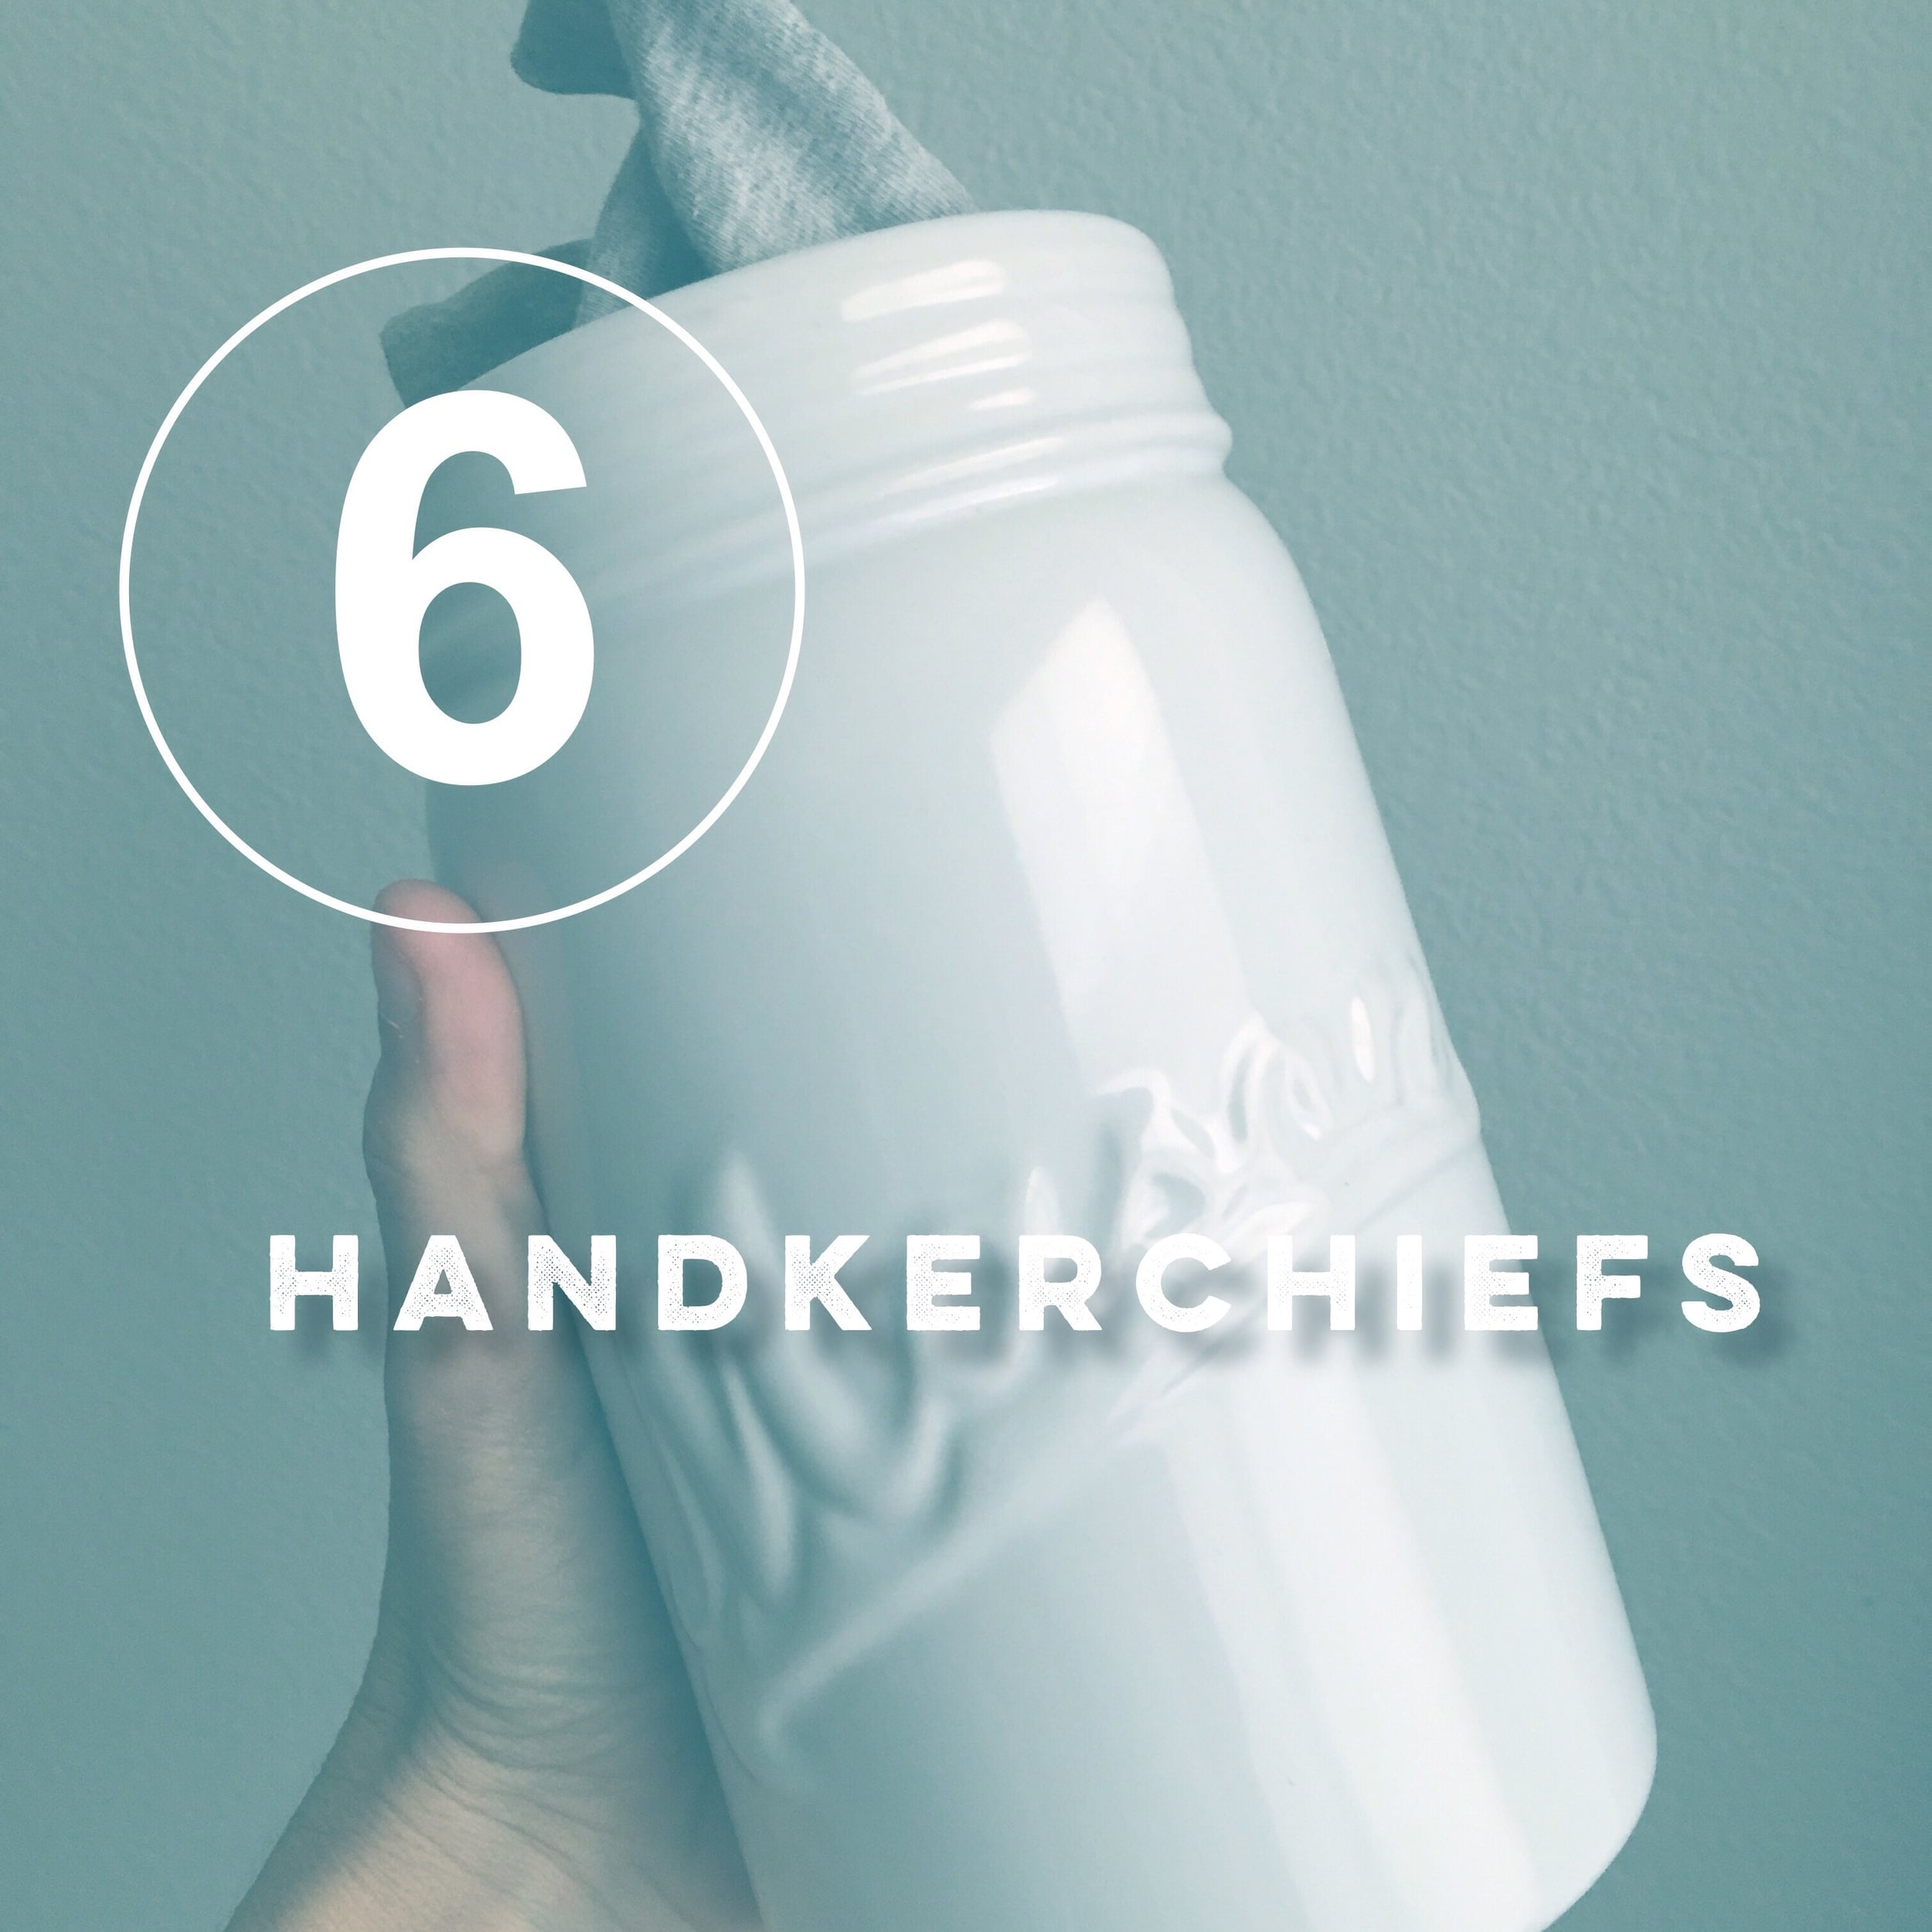 Tips for using a handkerchief